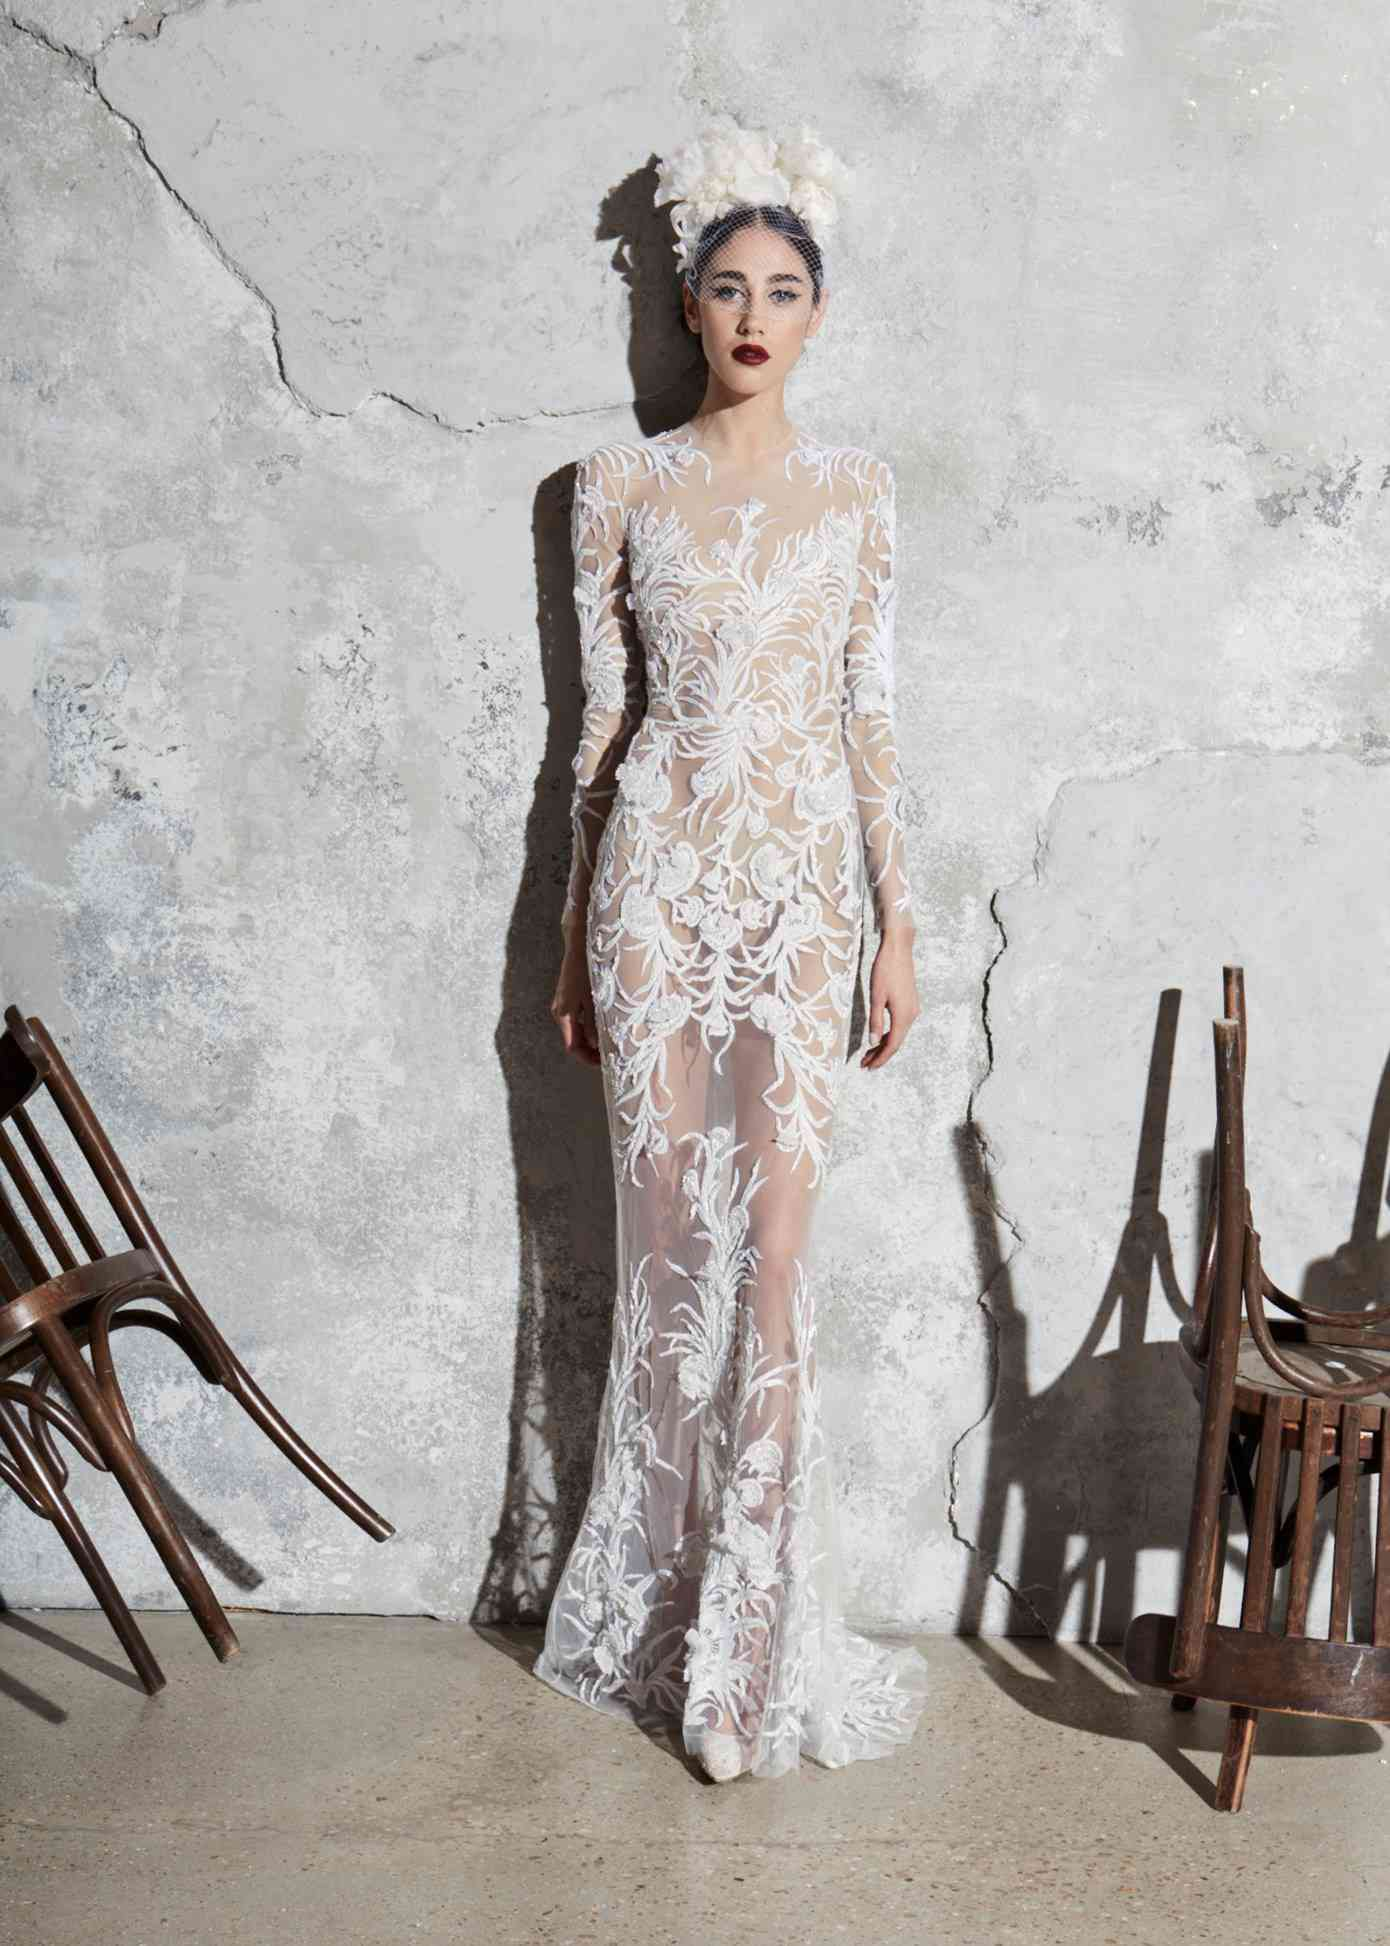 Model in an allover illusion tulle long-sleeve sheath gown with beaded embroidery and floral appliques